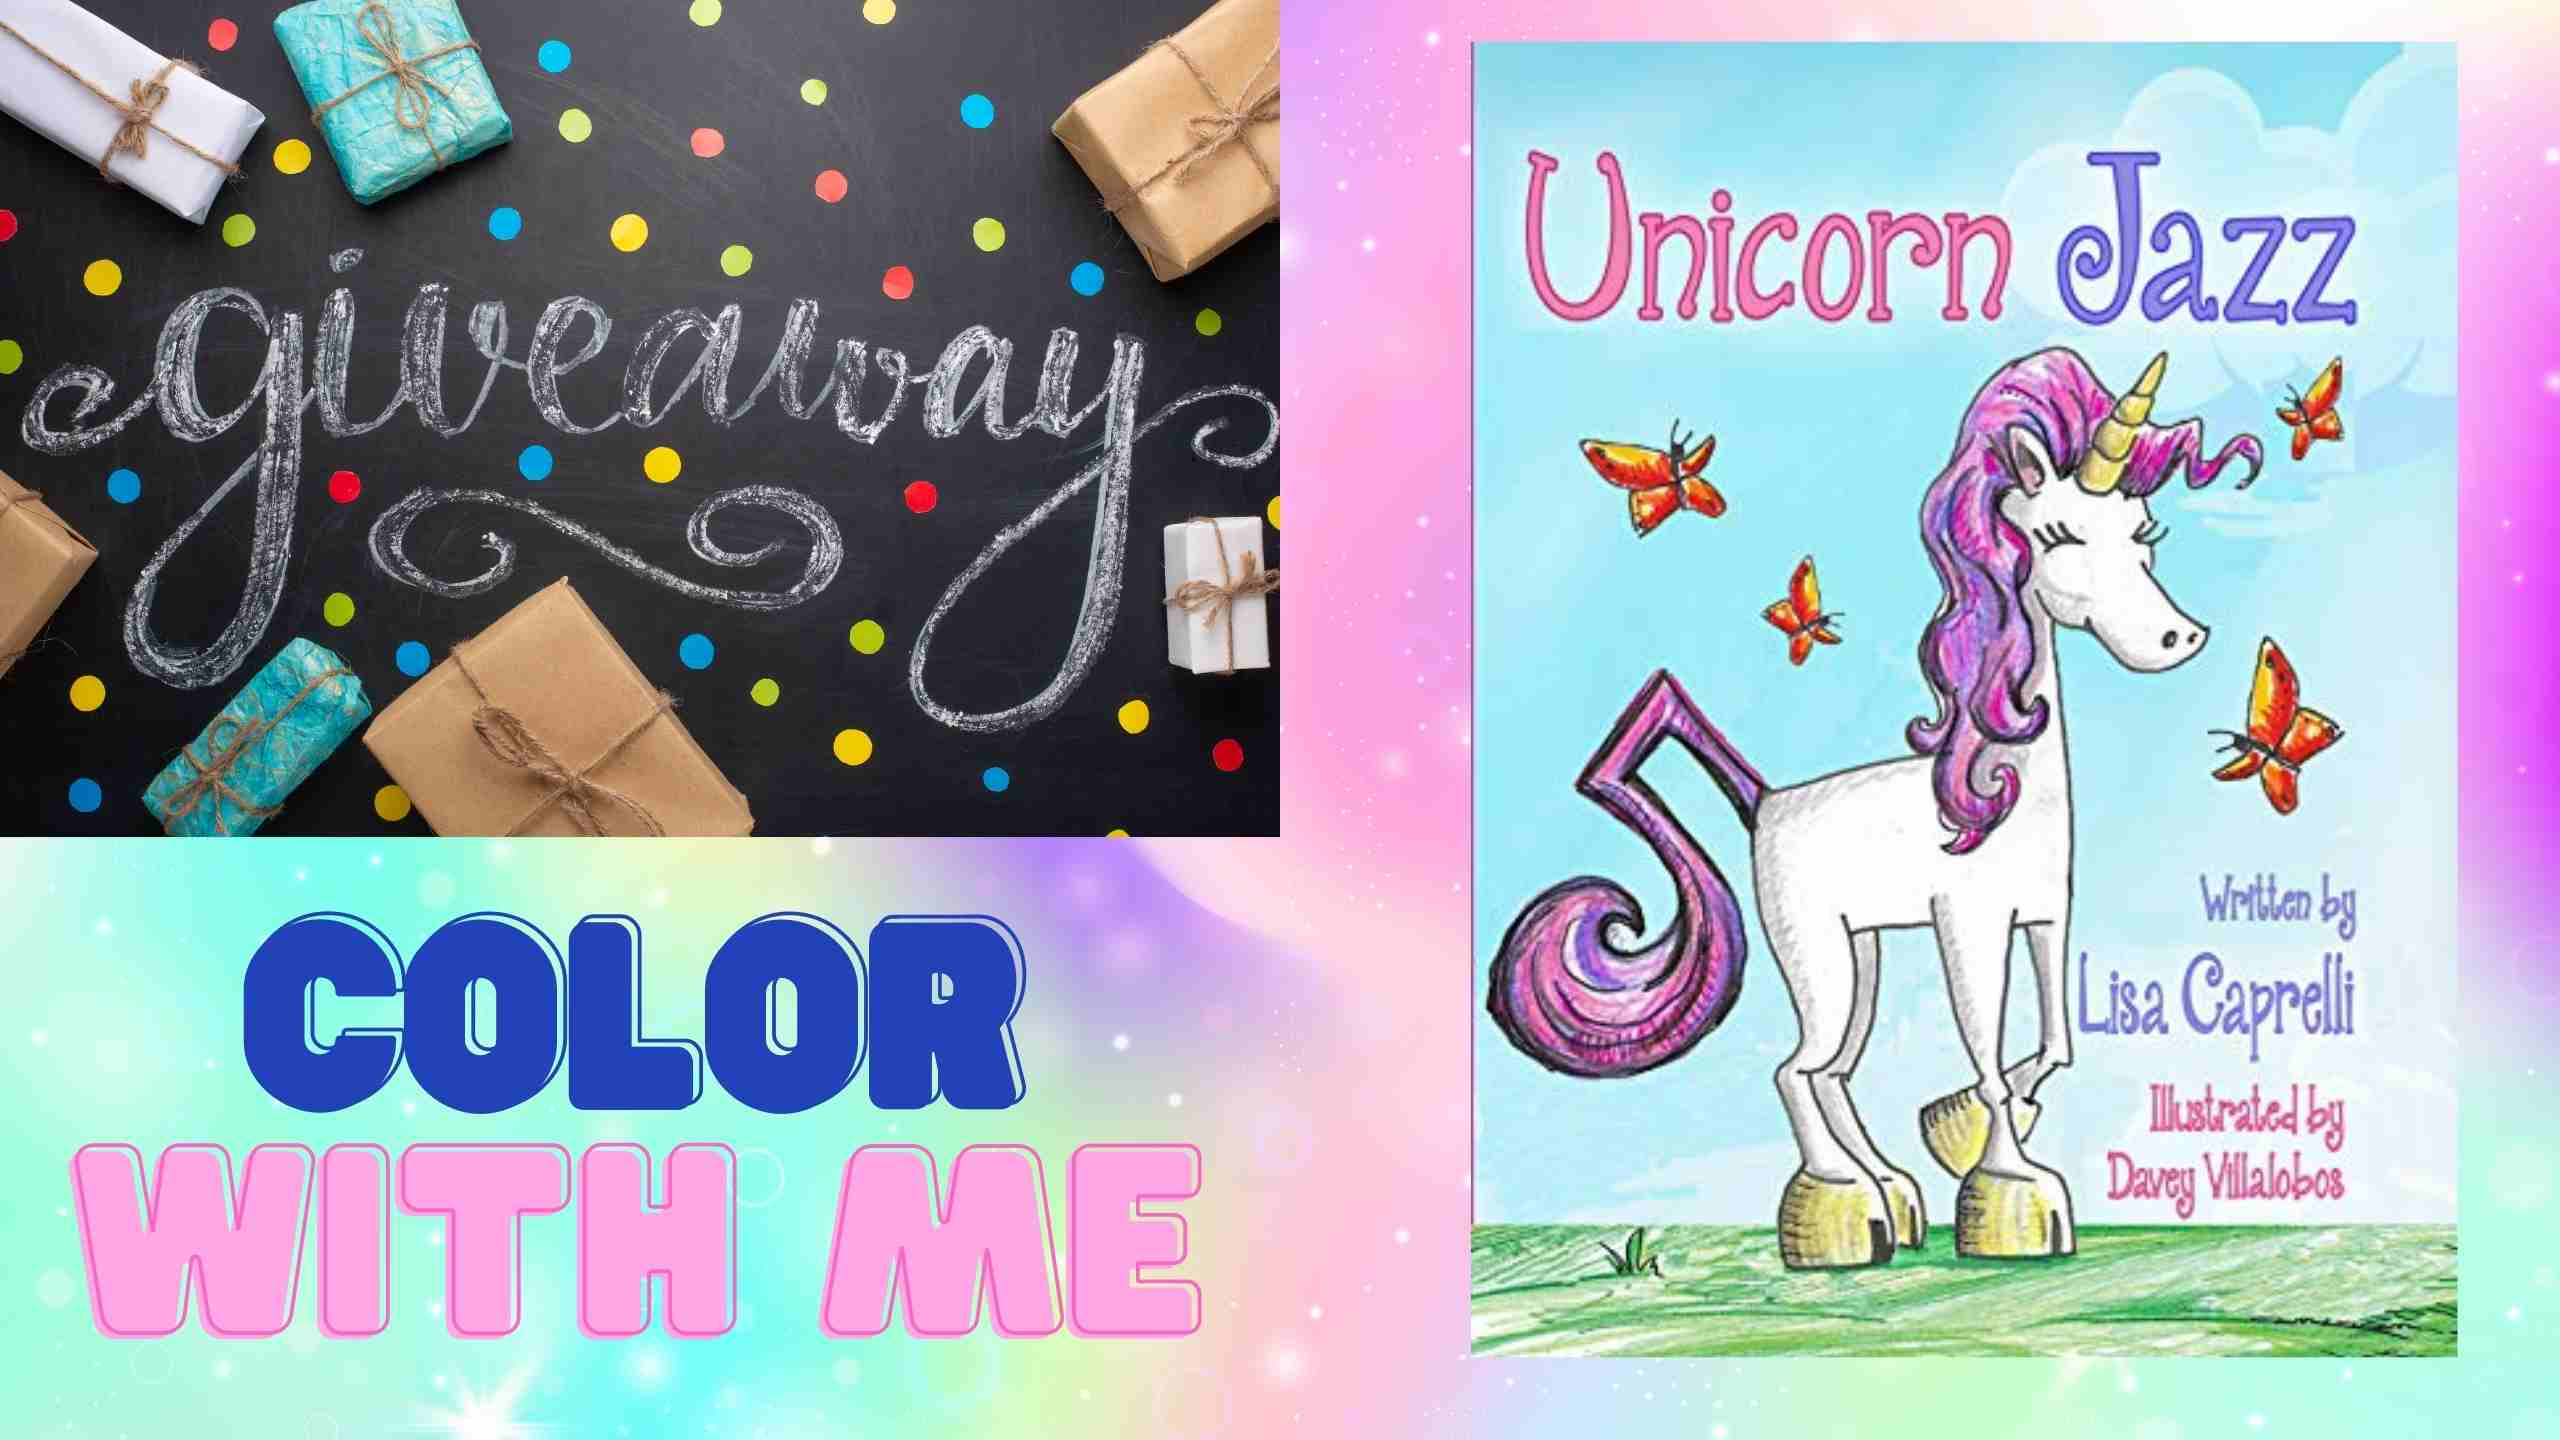 coloring page contest